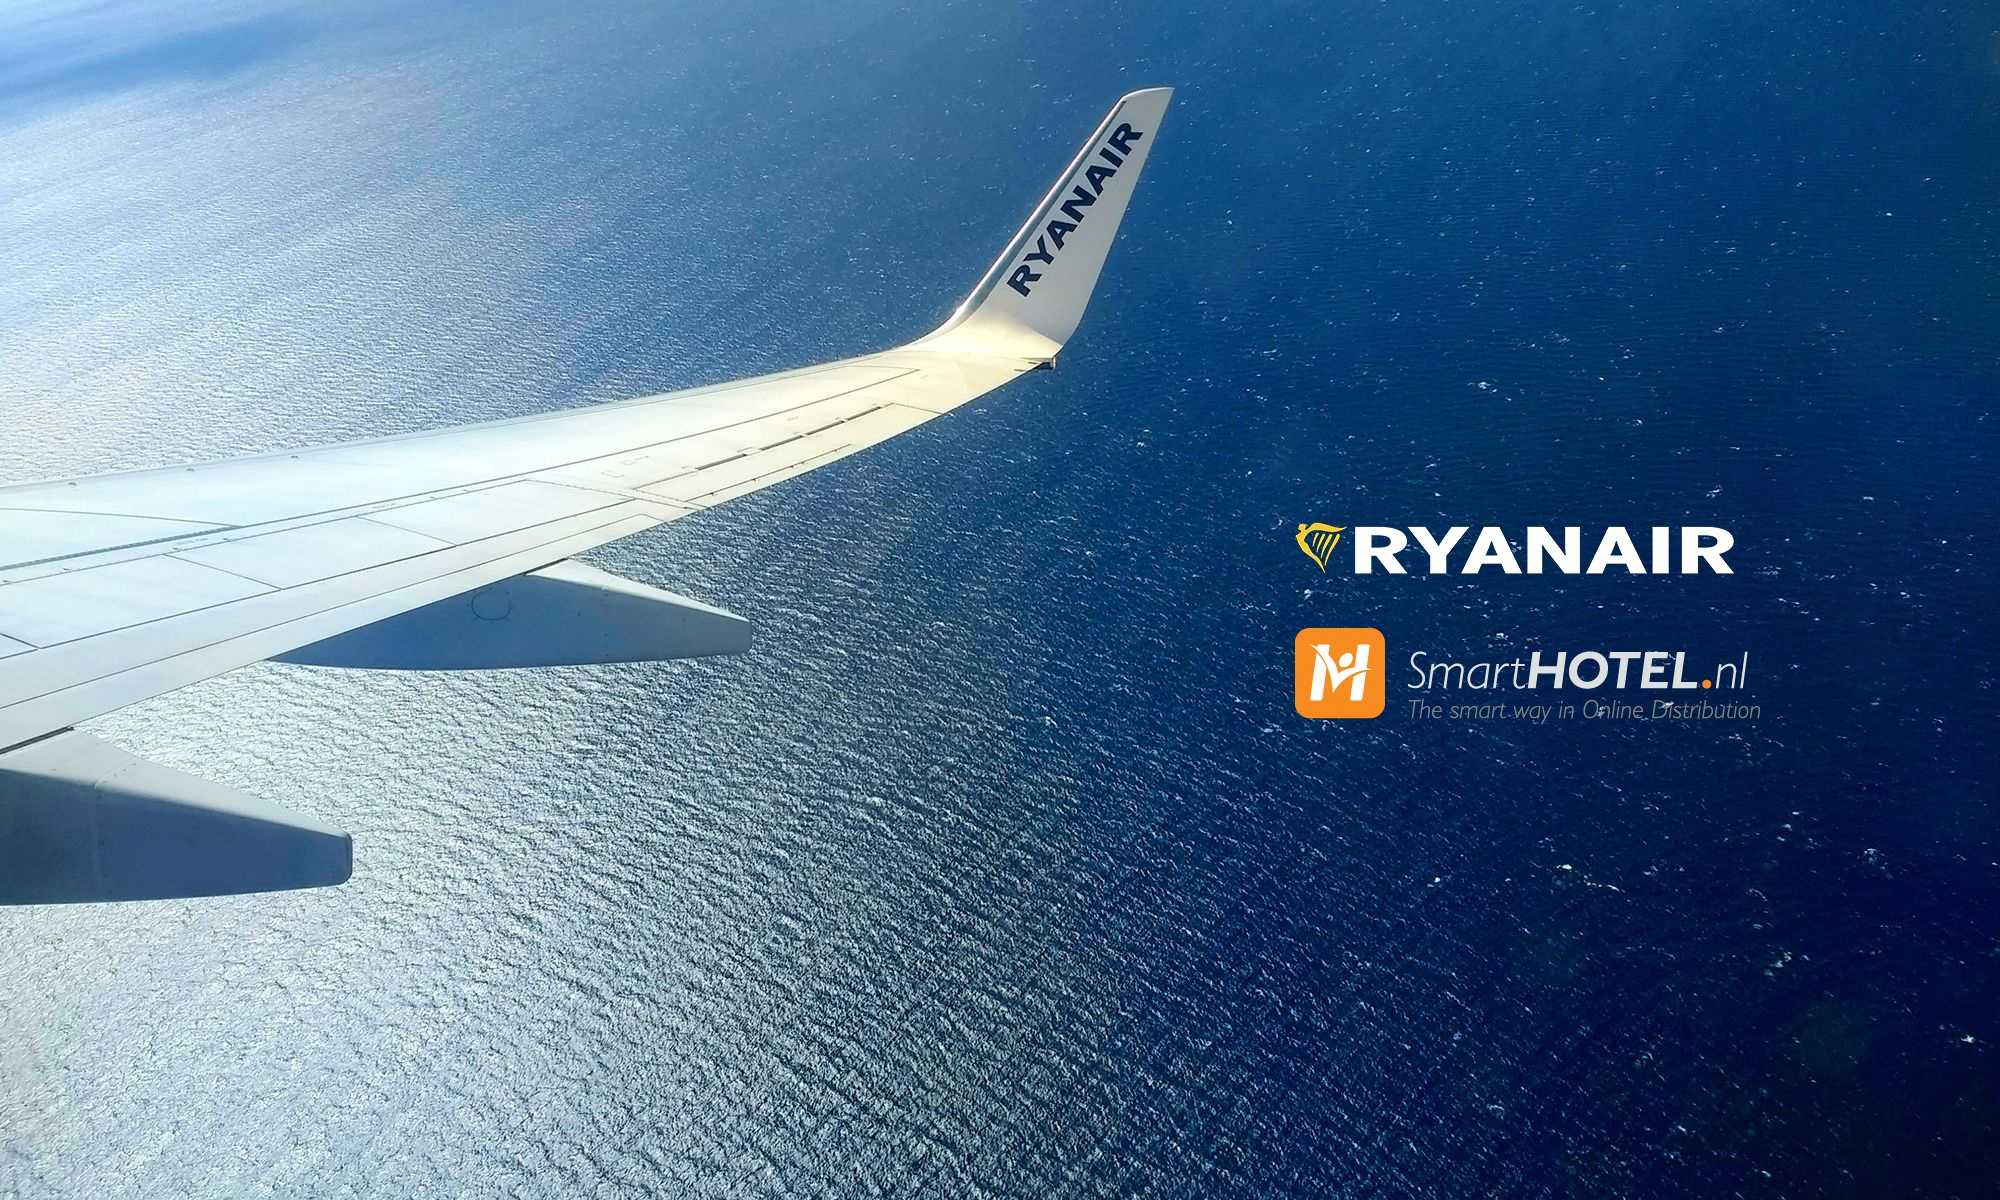 SmartHOTEL partners up with Ryanair to expand Ryanair Rooms service